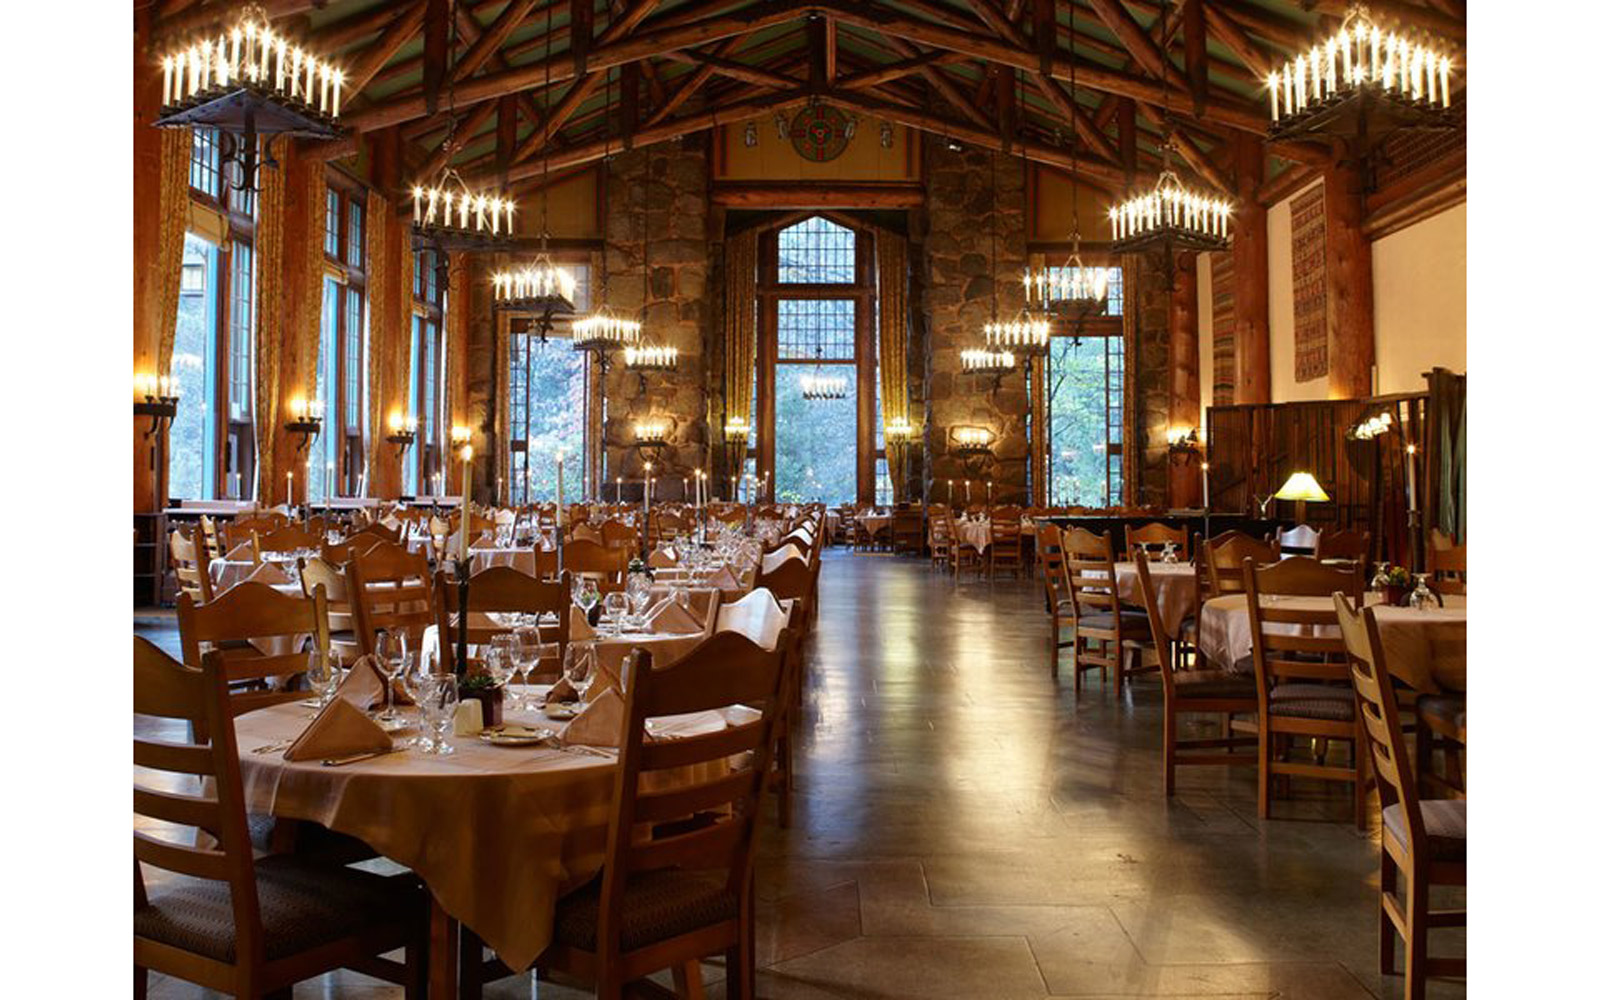 California – The Majestic Yosemite Dining Room